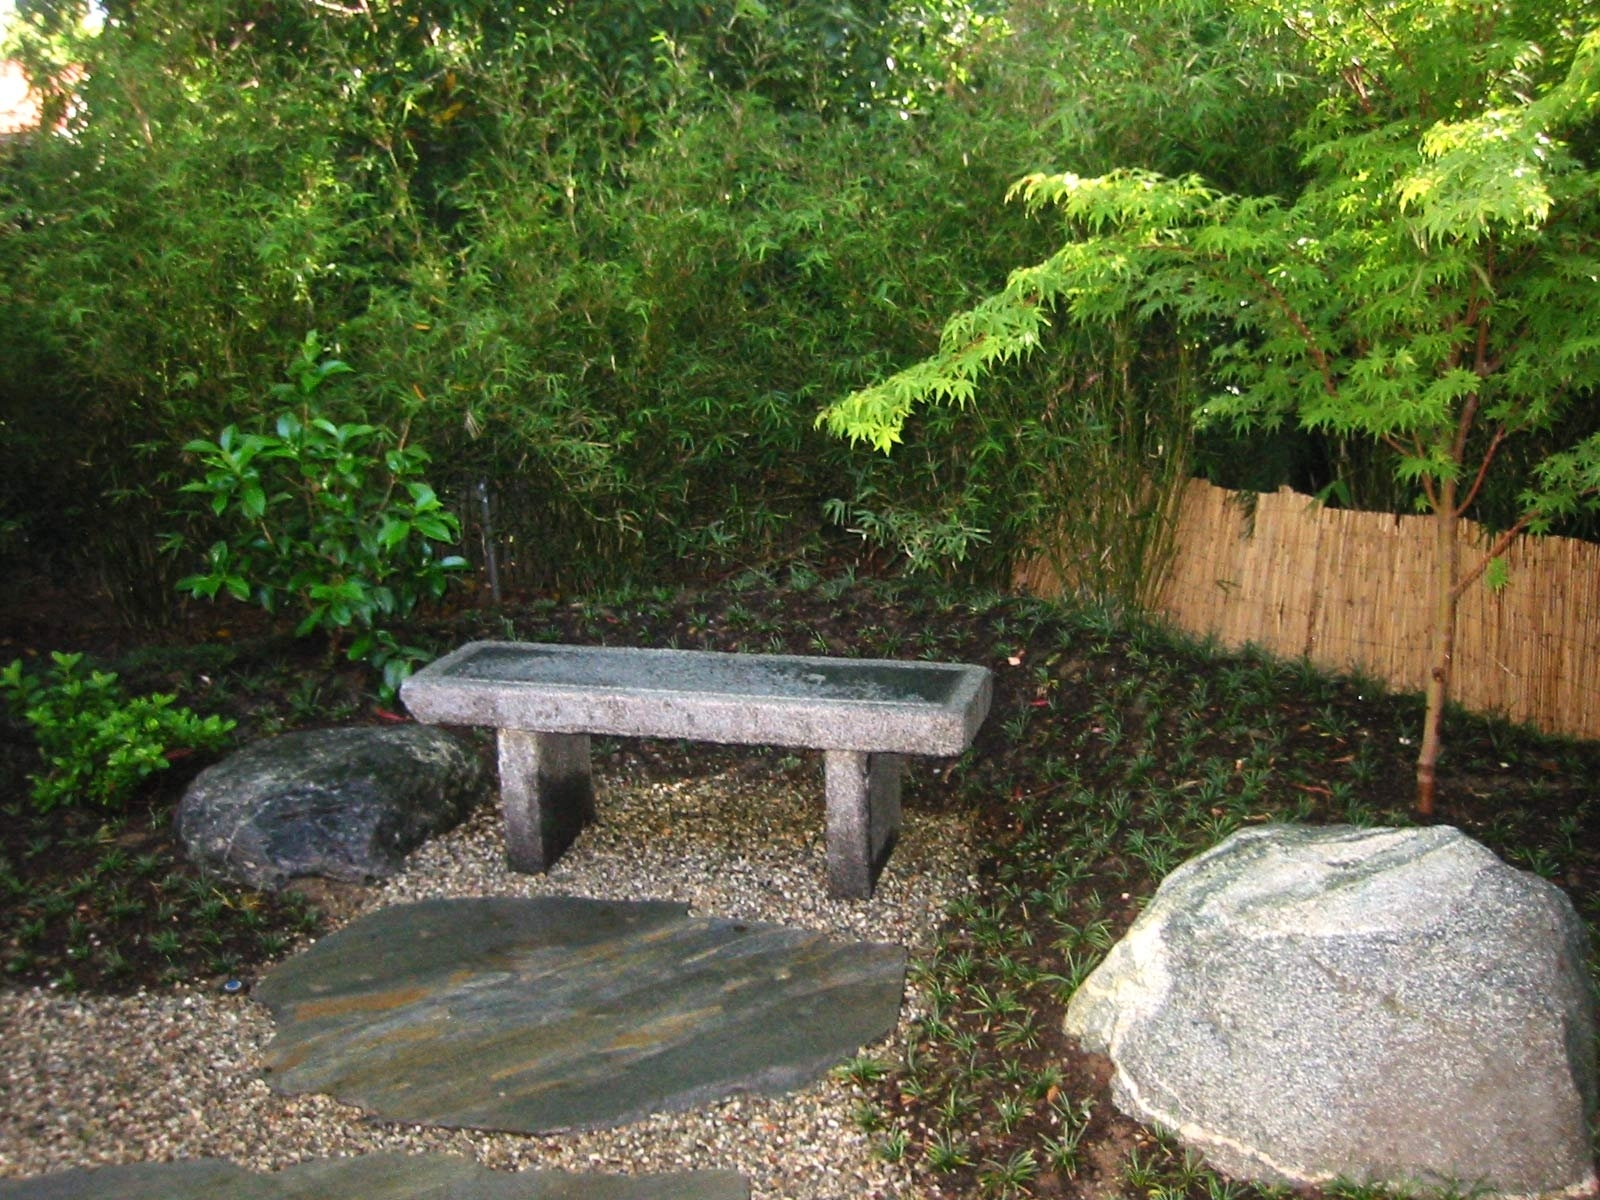 Japanese Landscaping Home Design Ideas Within Japanese Landscaping Frehsness Japanese Landscaping Garden At Home